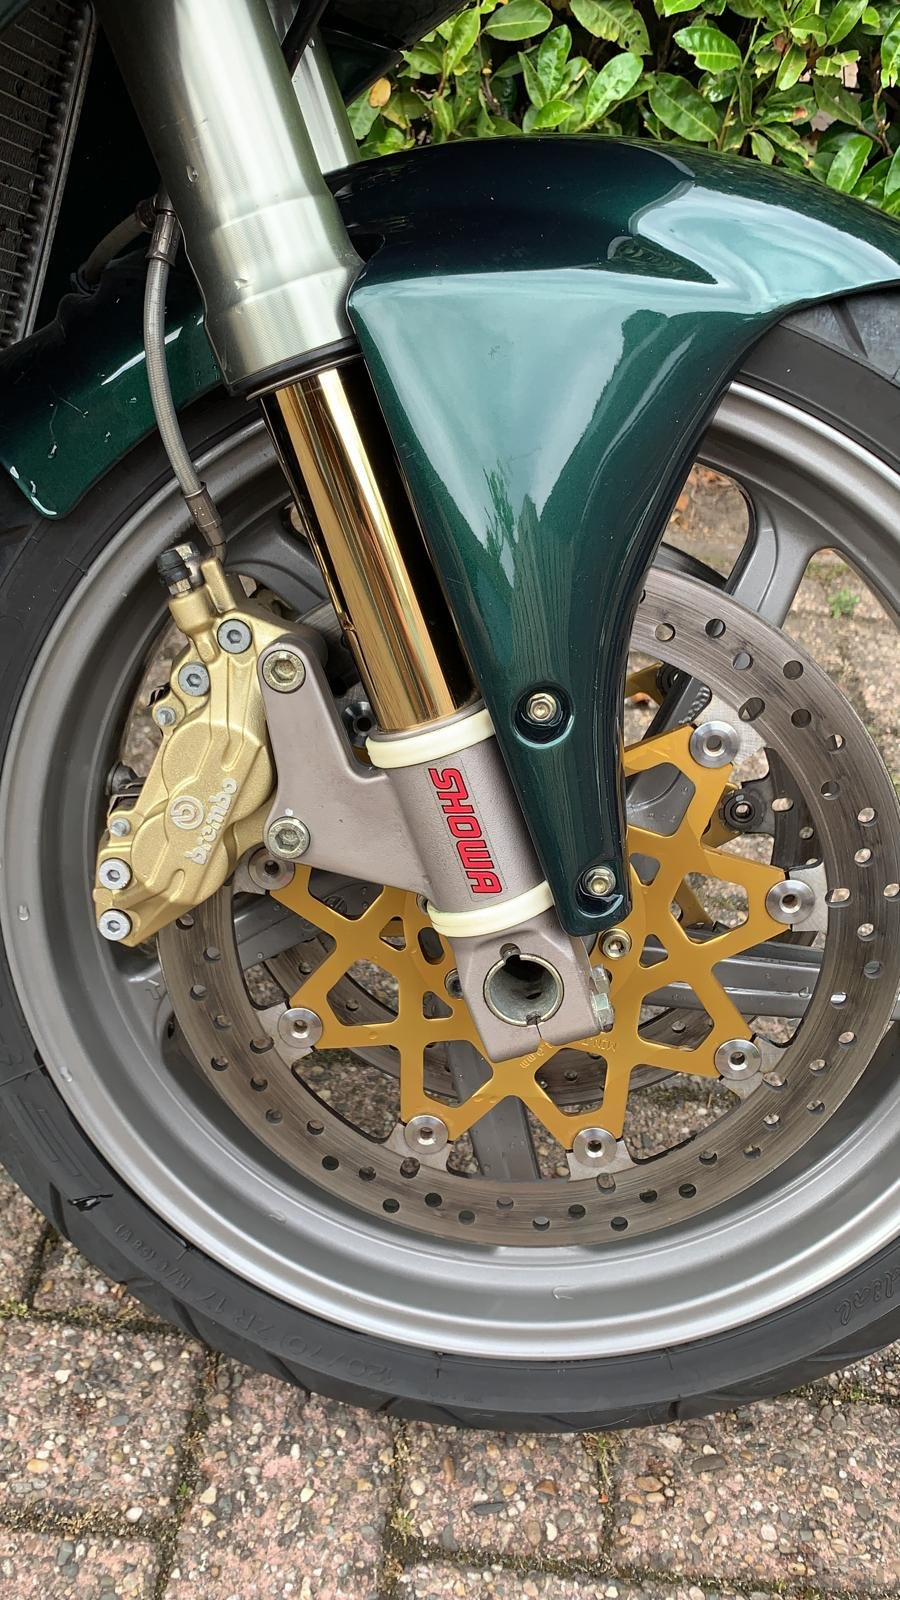 2004 Ducati 998 Matrix reloaded as new  For Sale (picture 3 of 6)